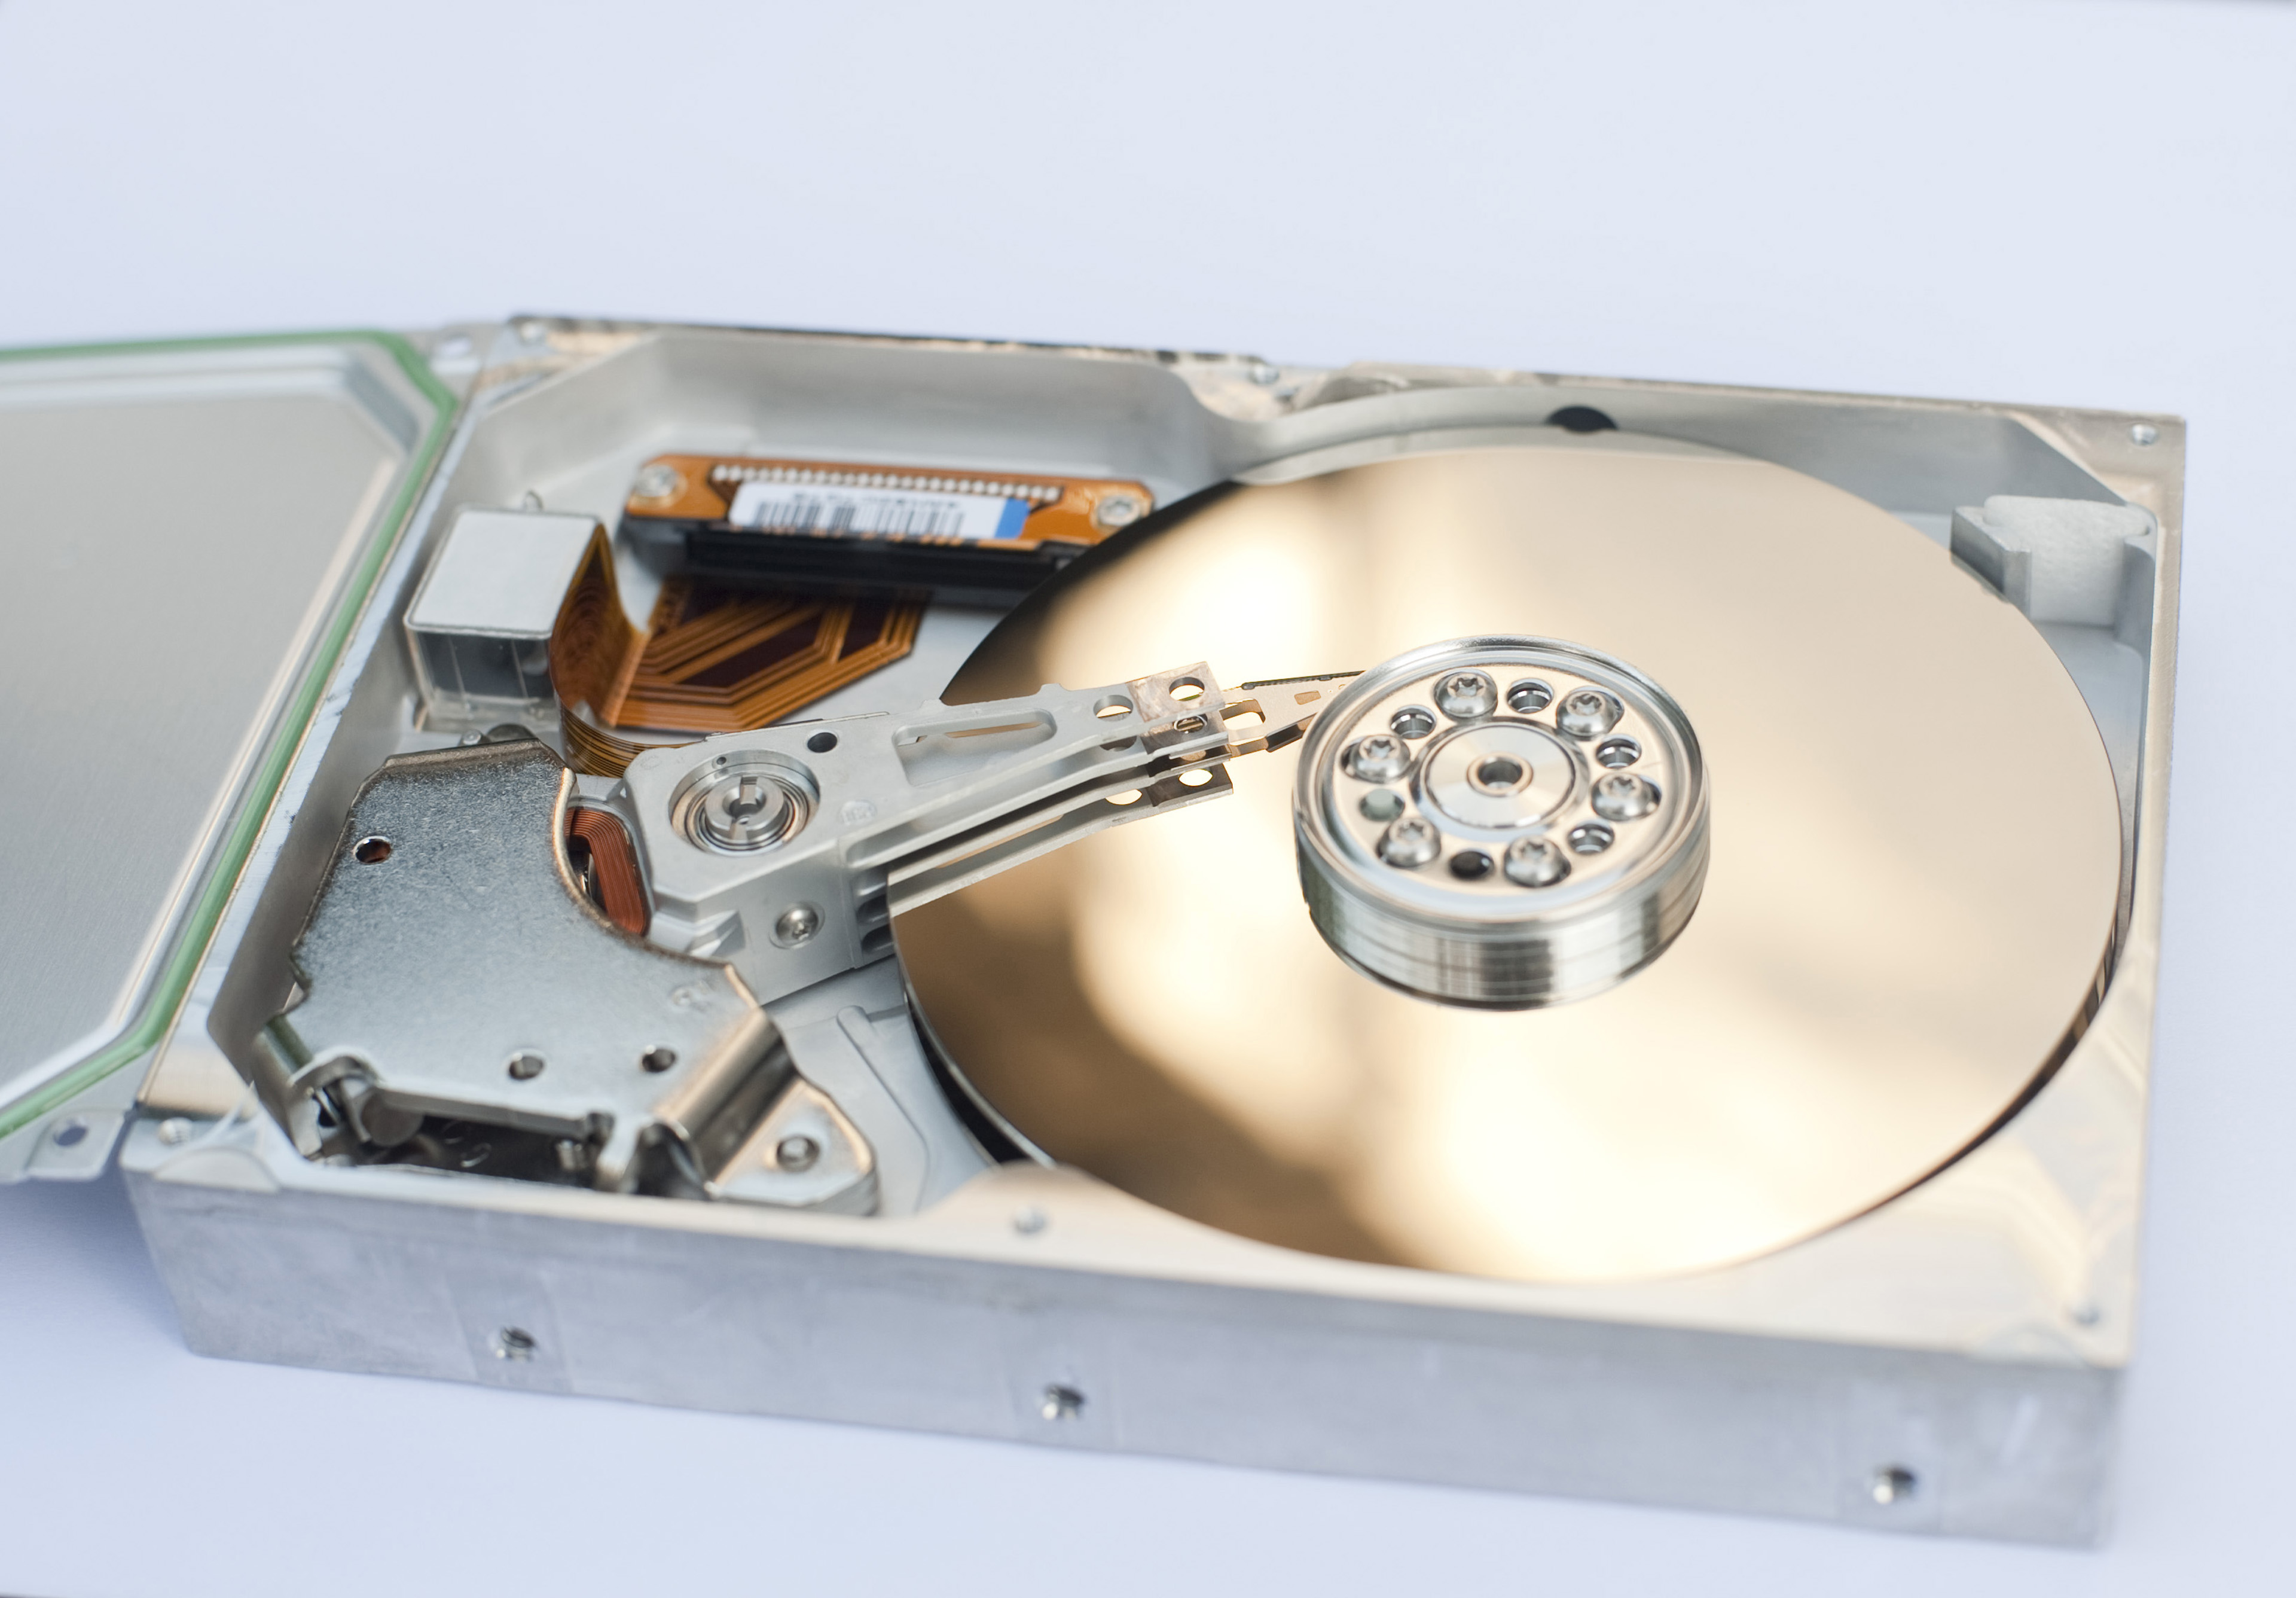 Close Up of Gold Colored Disk and Motor Hub of Hard Drive Computer Component on White Background